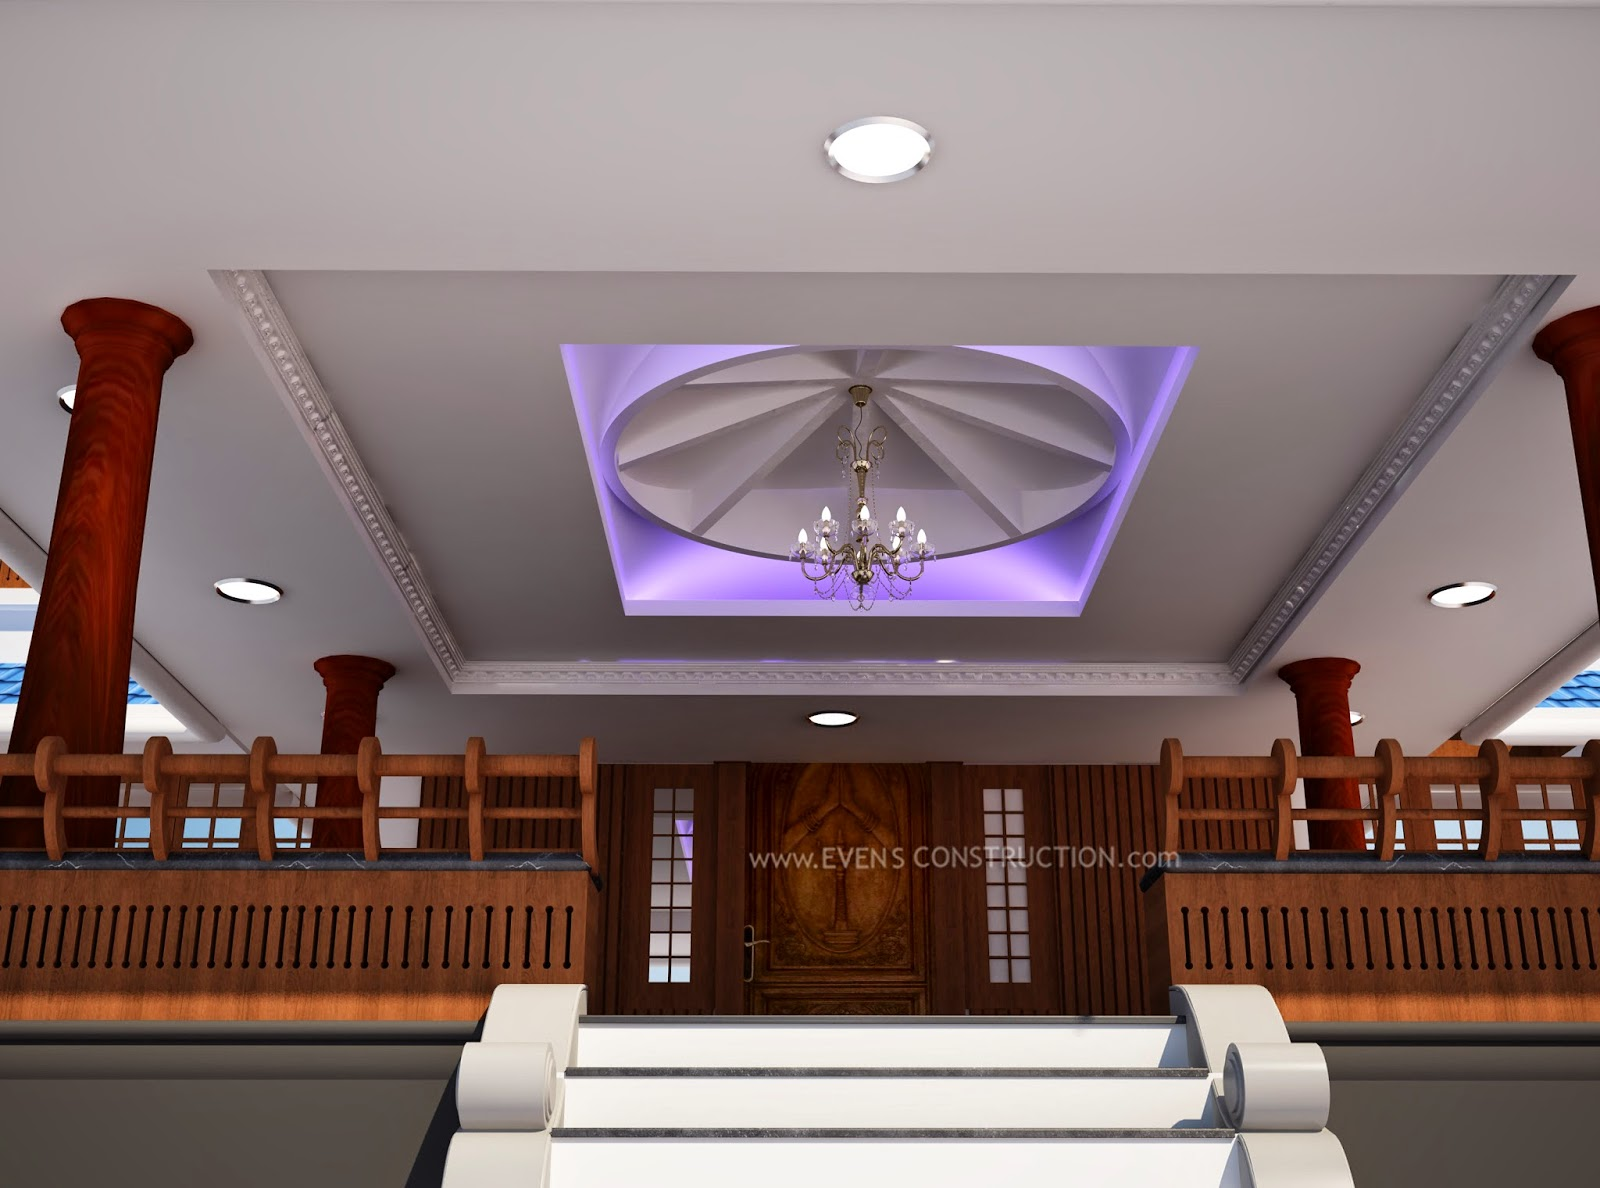 Modern ceiling designs for dining room - Modern Ceiling Designs For Dining Room 51